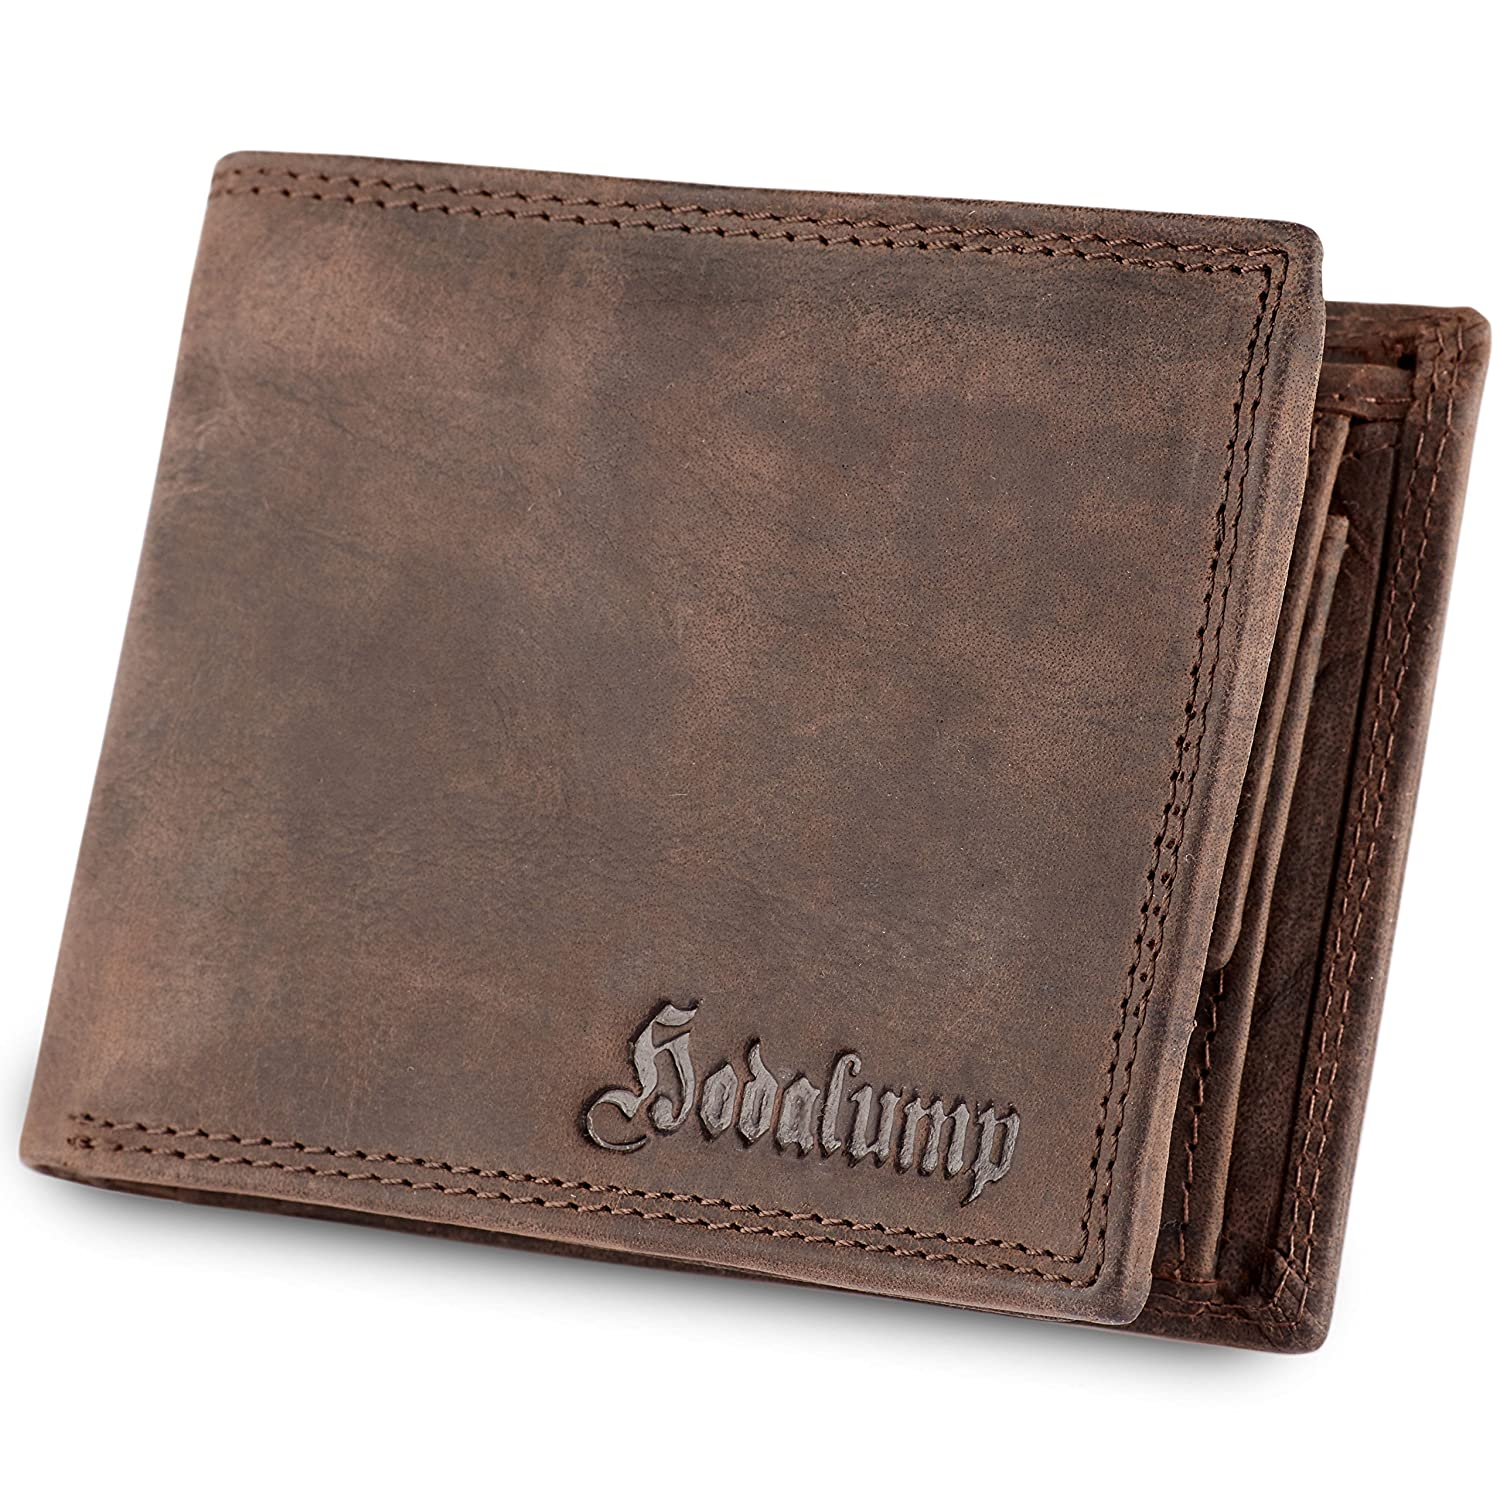 Leather Wallet Men - Handmade - Premium Wallet